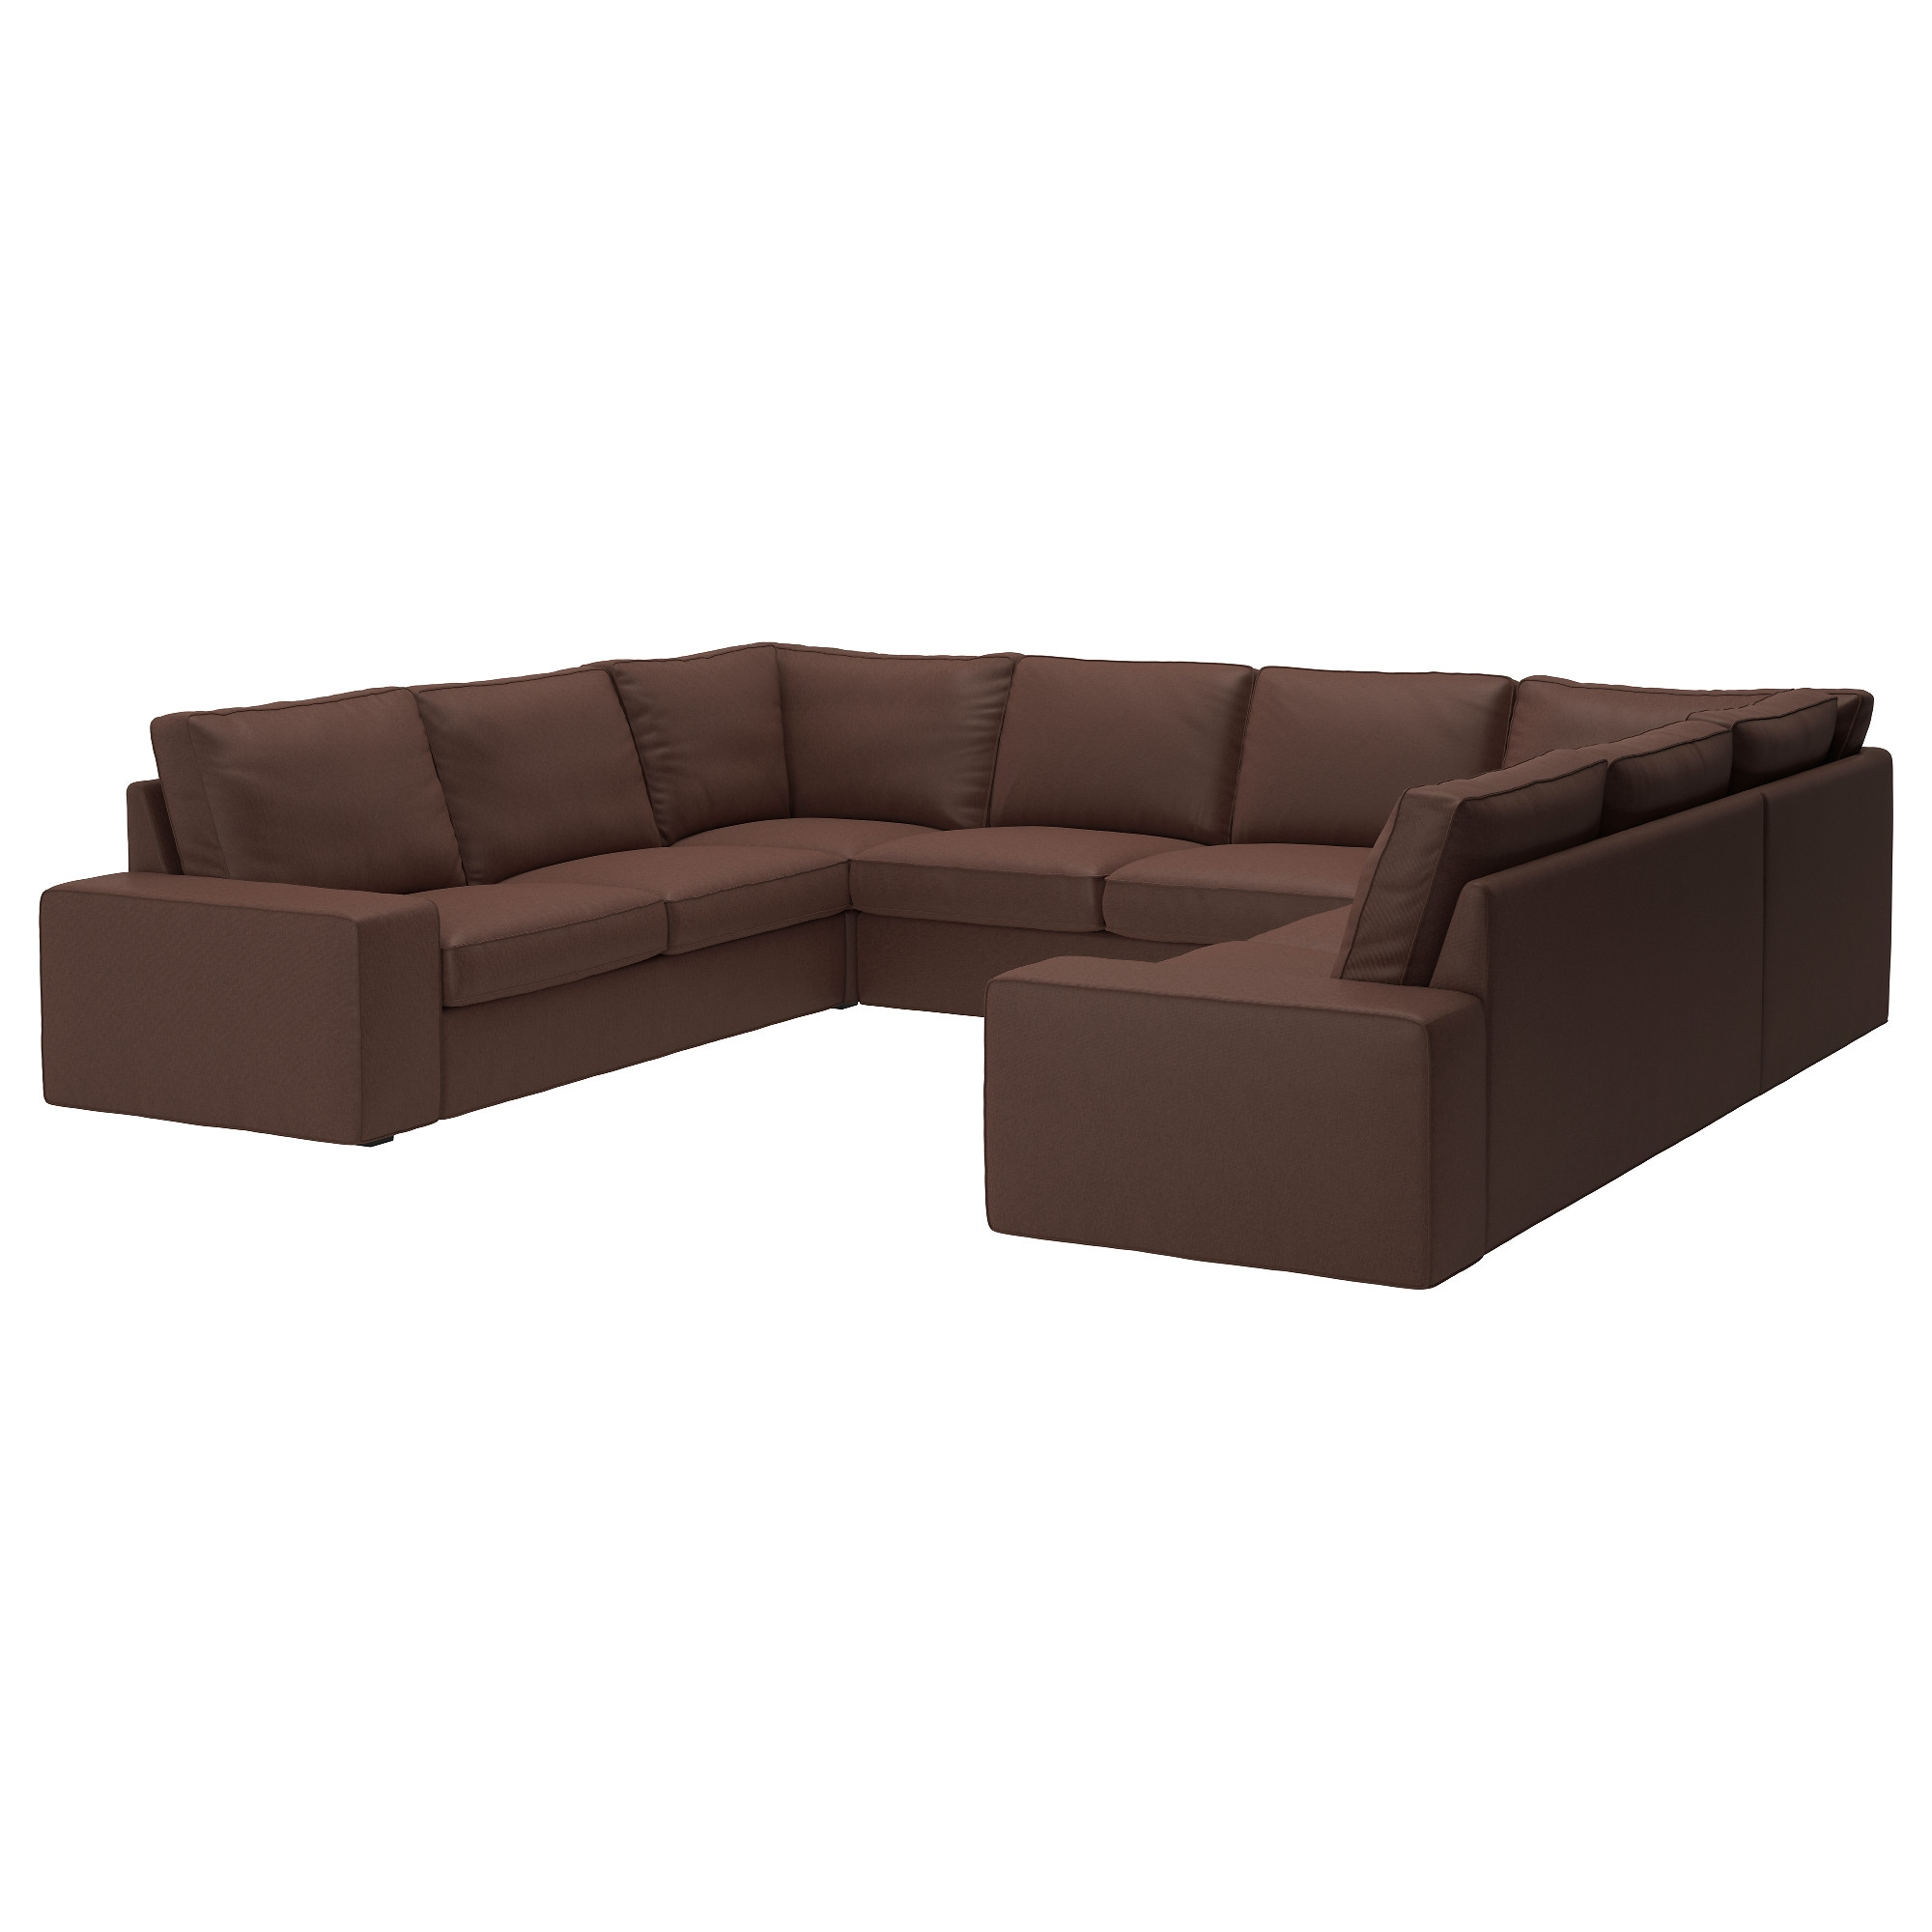 Couch u form  KIVIK U-shaped sofa, 6 seat - 8-seater/Hillared dark blue - IKEA